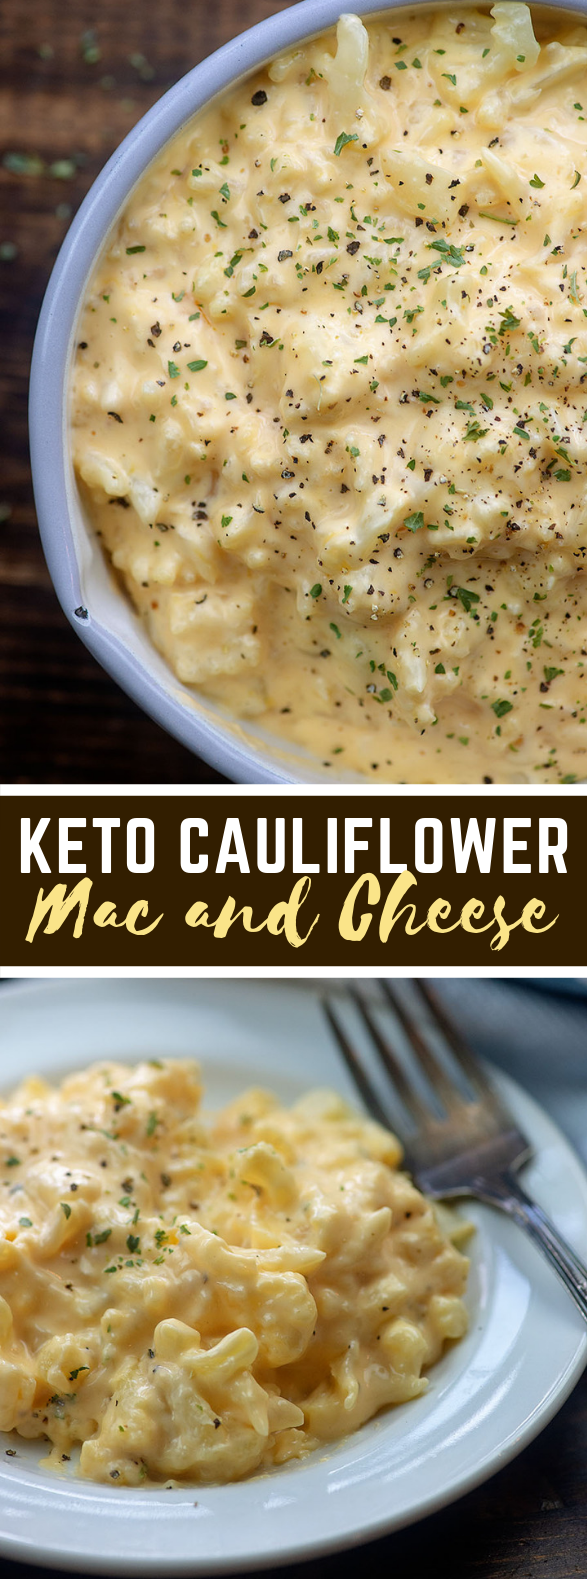 CAULIFLOWER MAC AND CHEESE #lowcarb #healthydiet